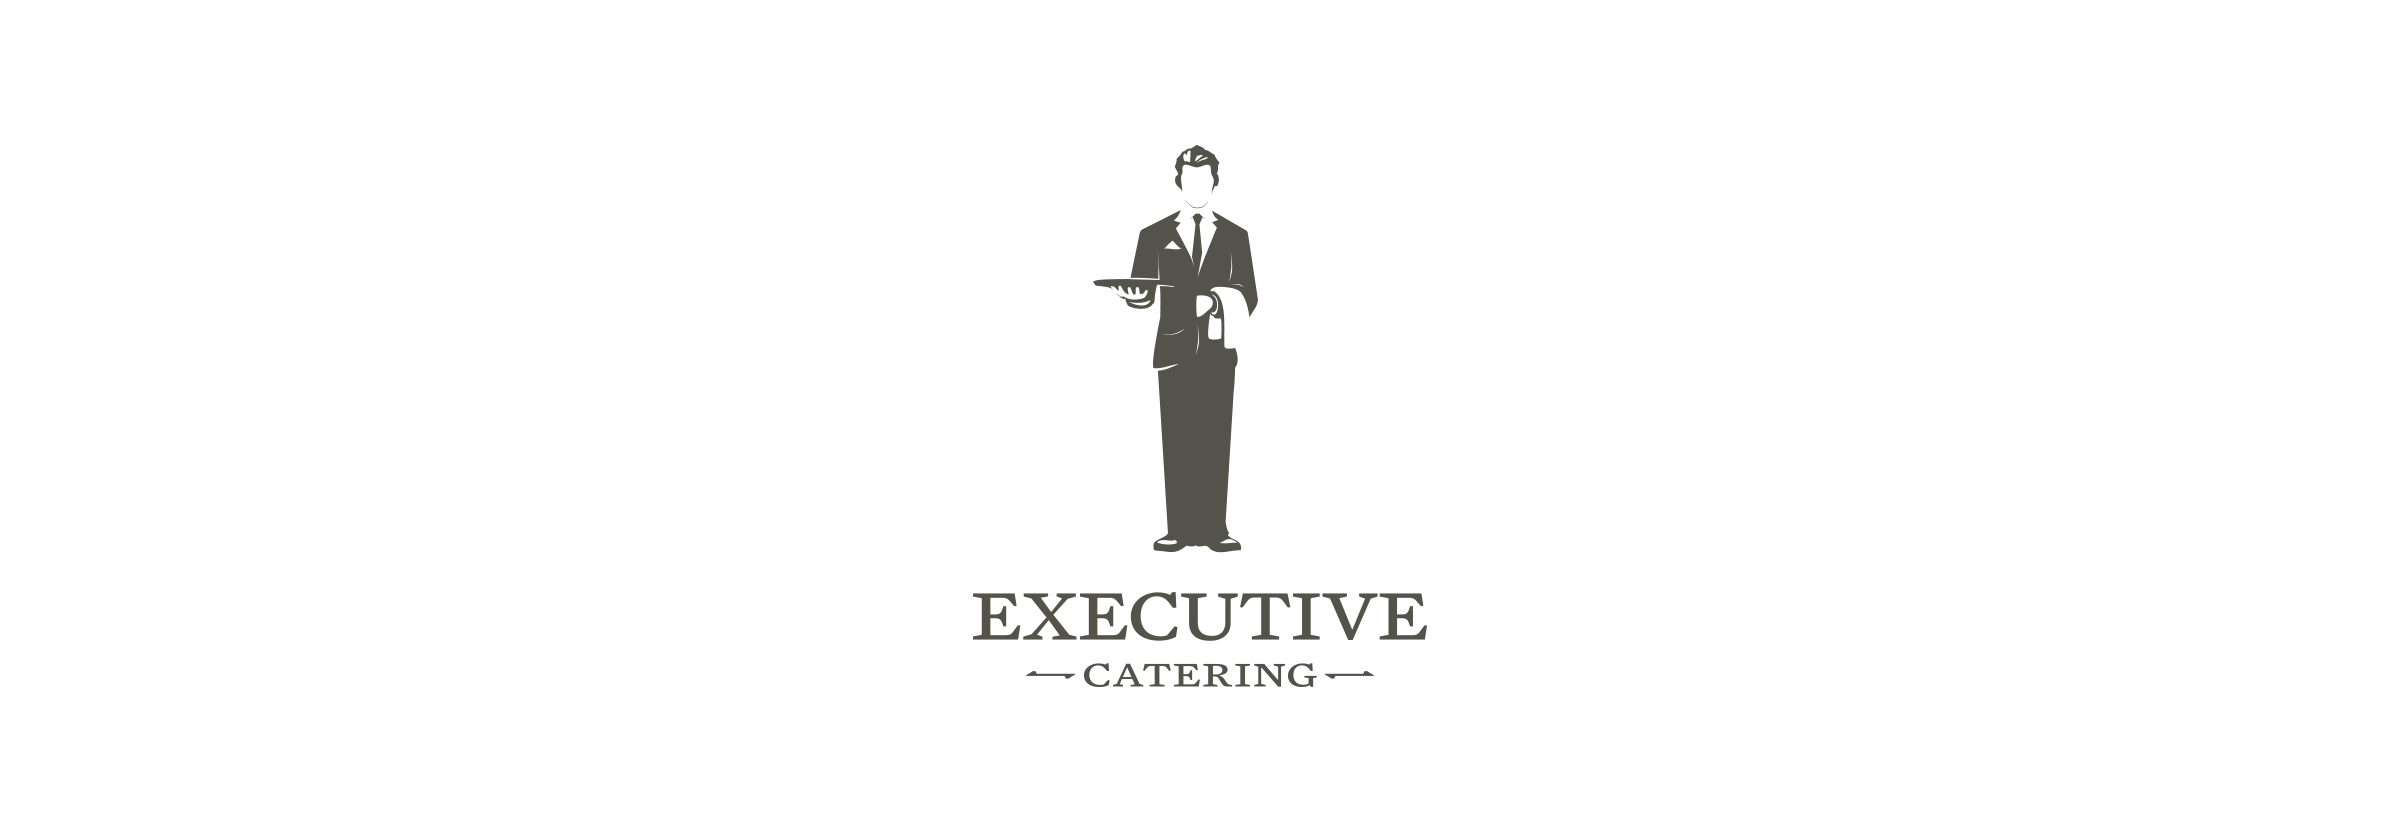 ExecutiveCateringLogoSized.jpg